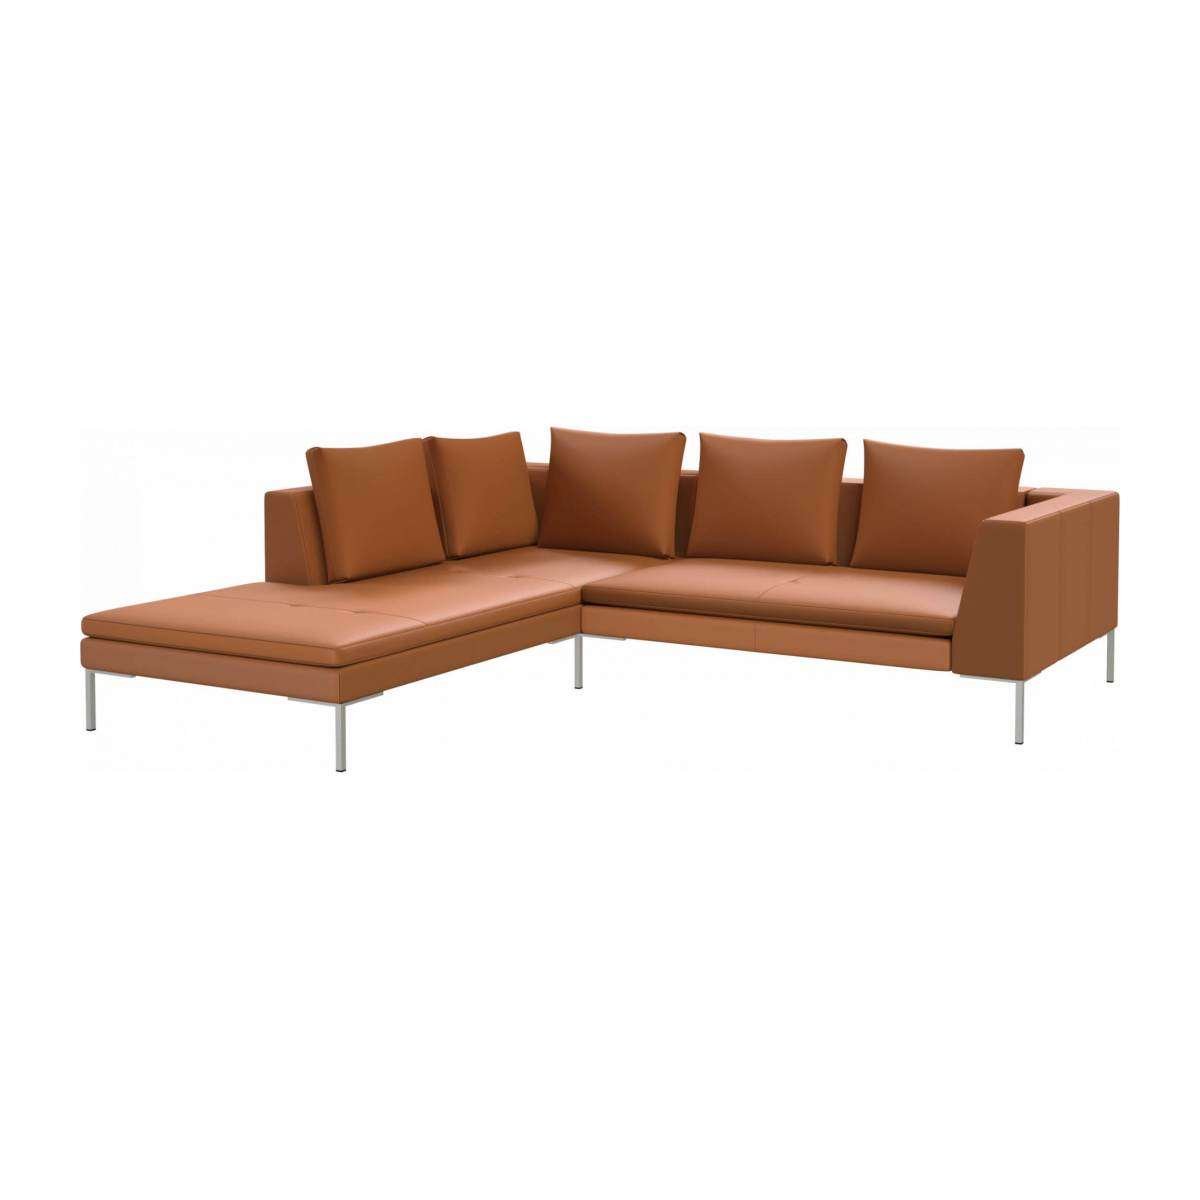 2 seater sofa with chaise longue on the left in Savoy semi-aniline leather, cognac  n°2